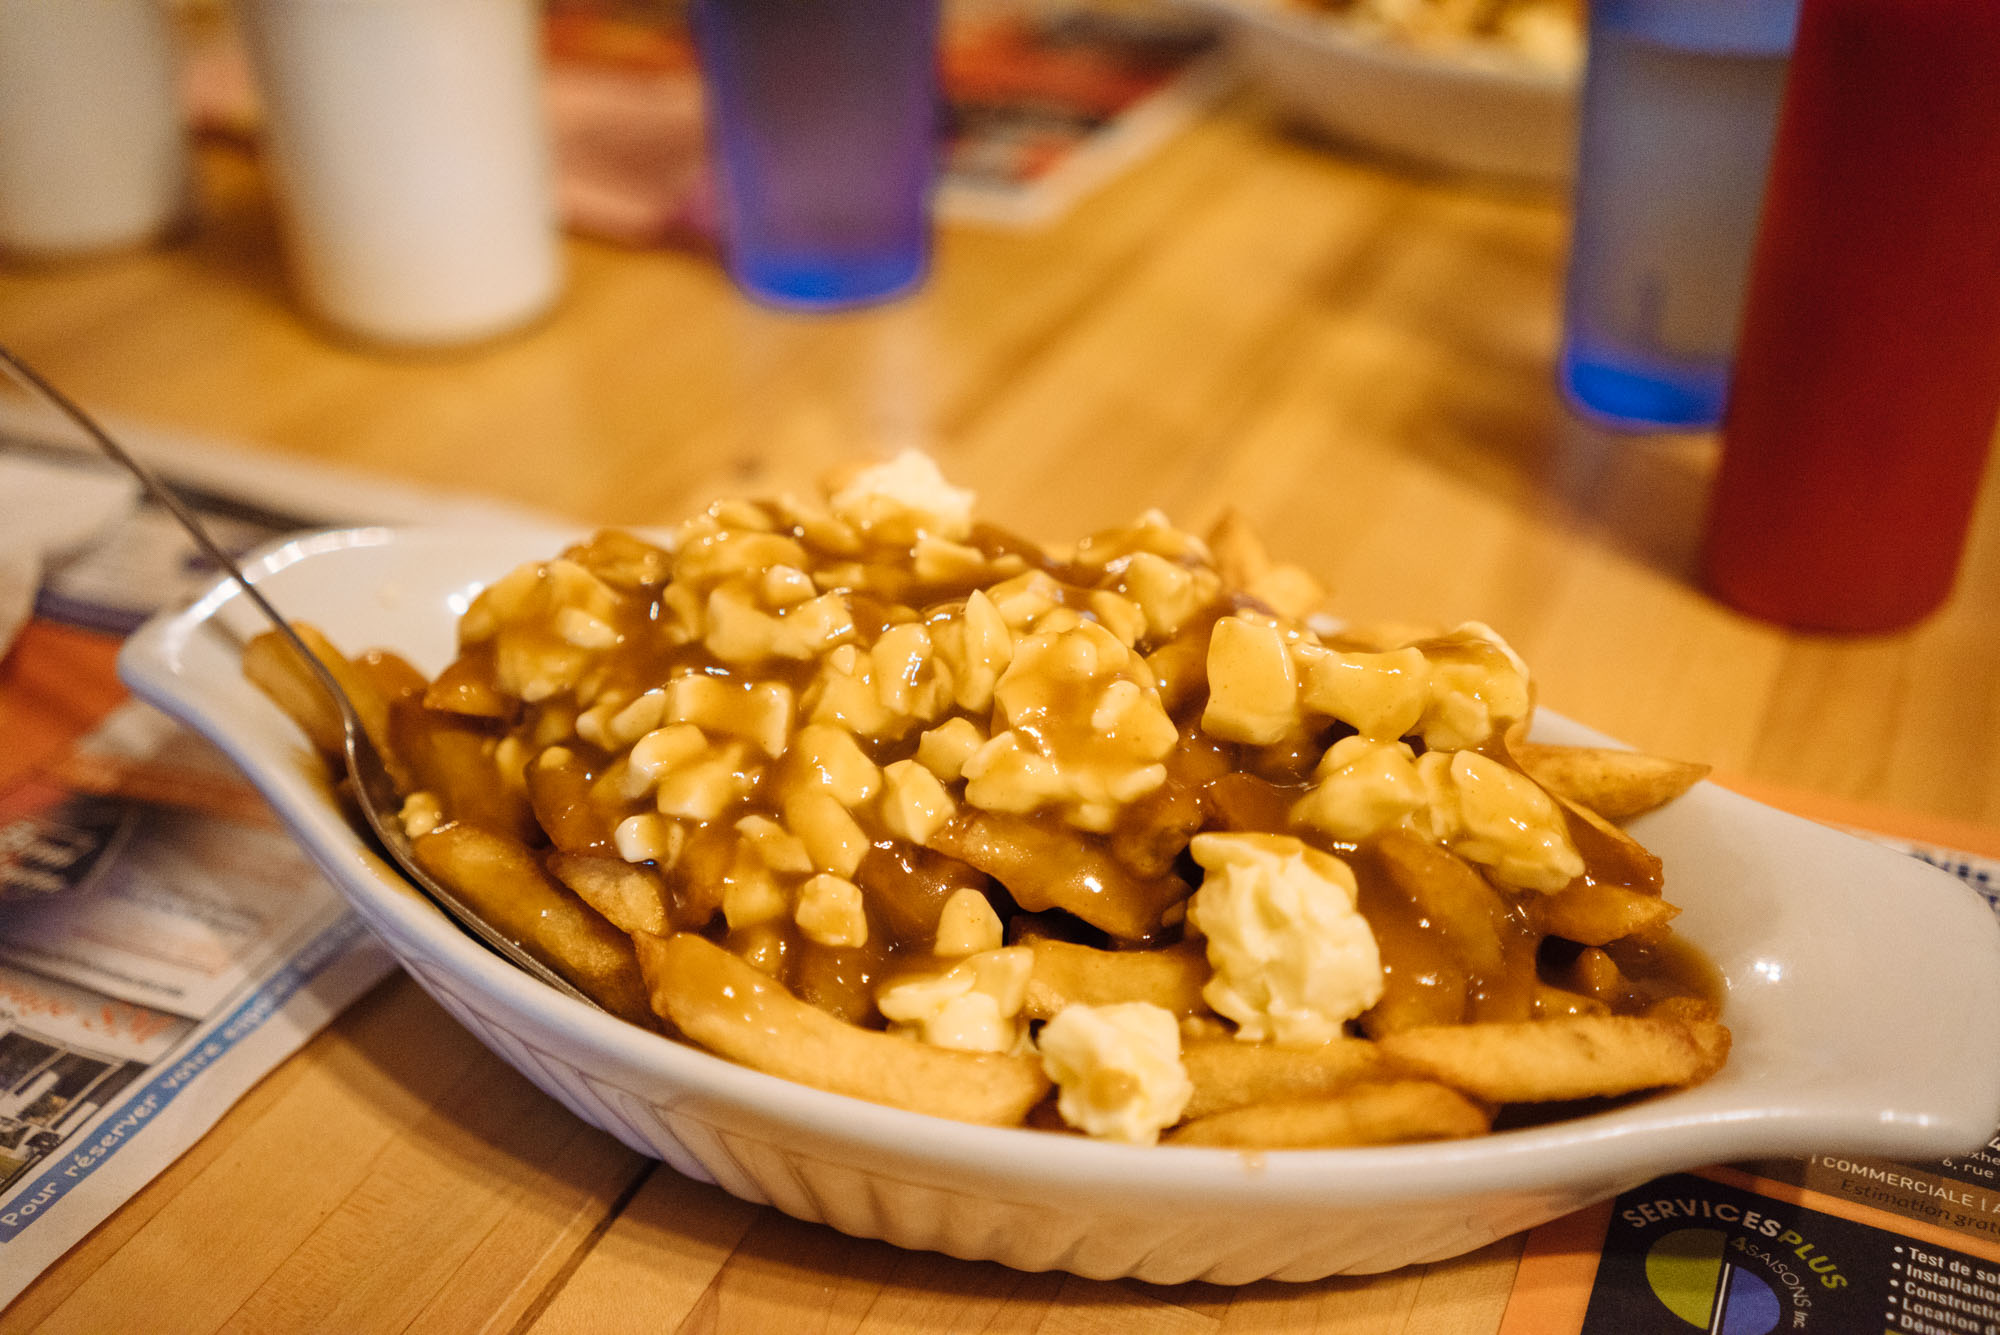 More poutine. Can't stop, won't stop!